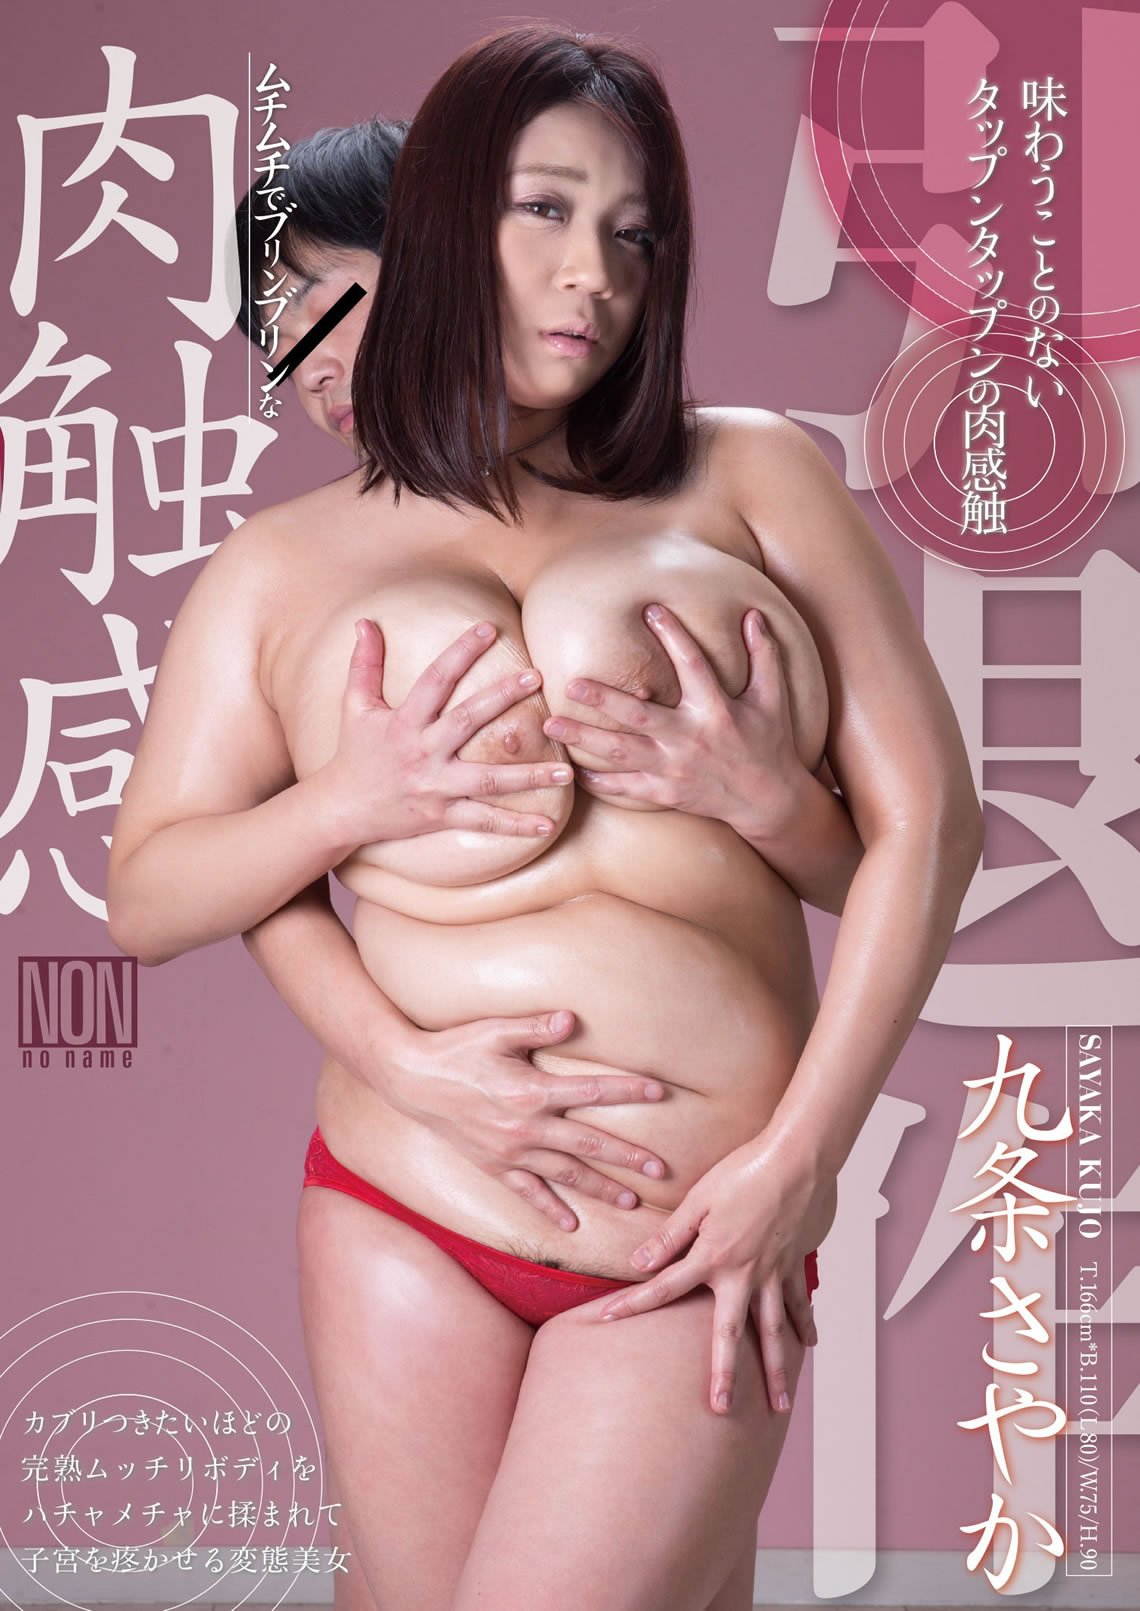 Plump And Tight Meat Touch, Sayaka Kujou